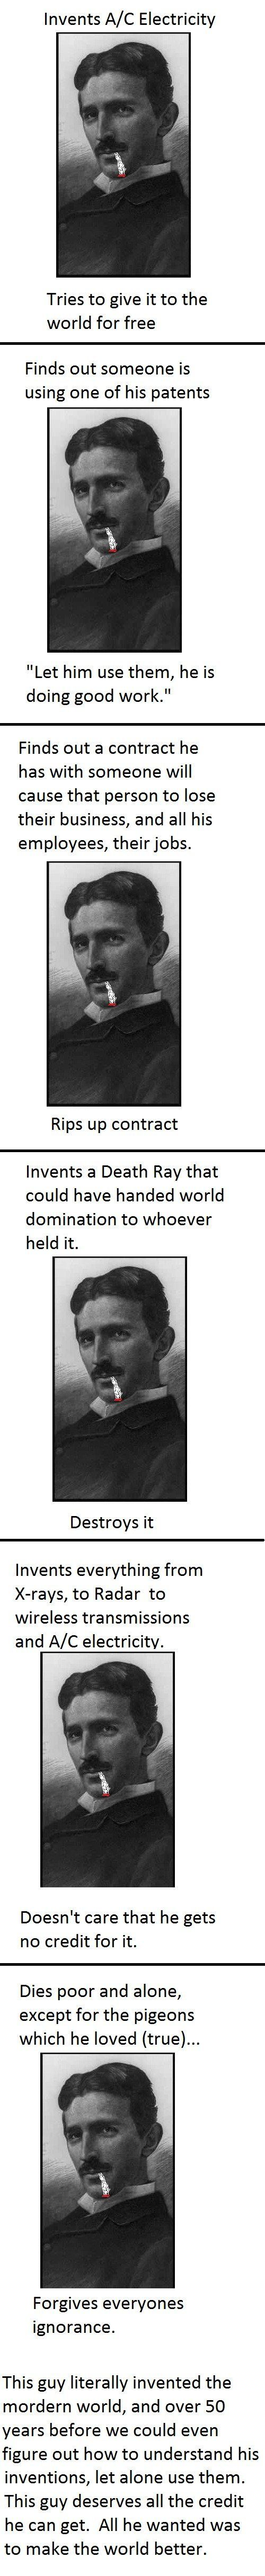 Nicola Tesla. Pure genius. I've always loved and admired this guy. It's  just too bad he had to die poor and alone.